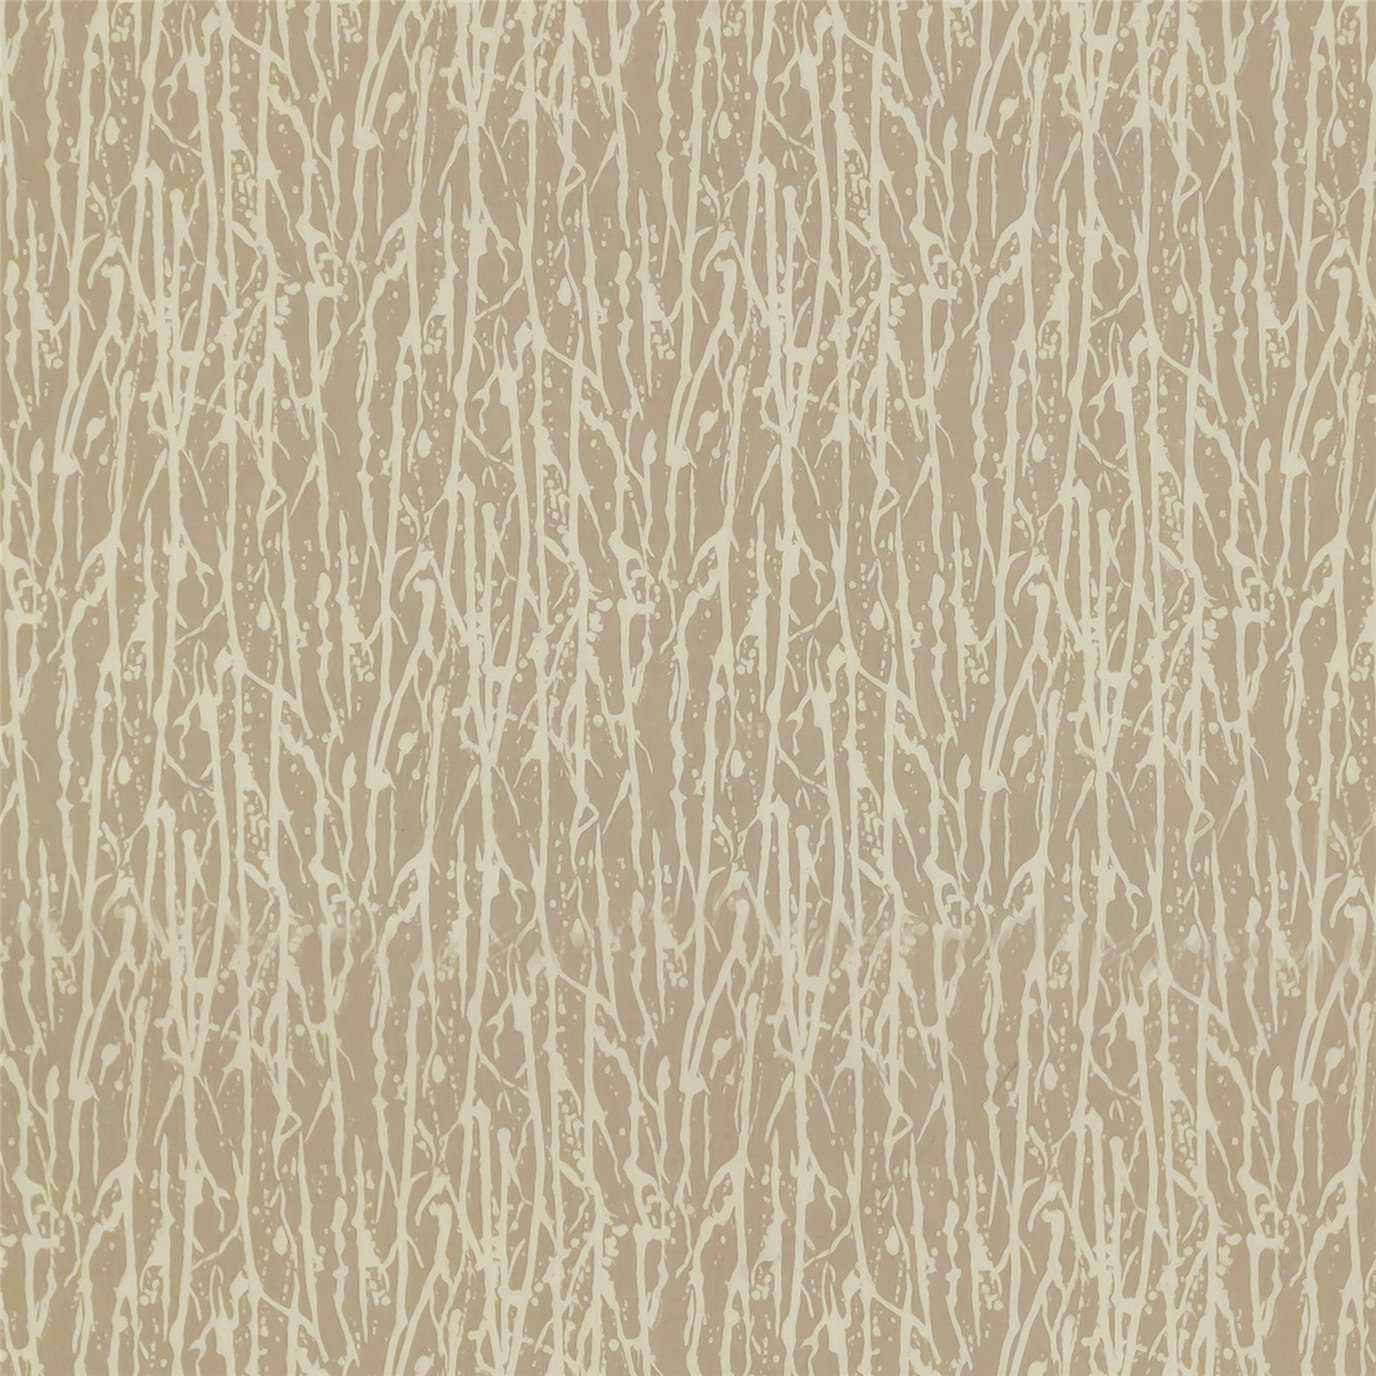 Willowbrook Fabric by the Yard.